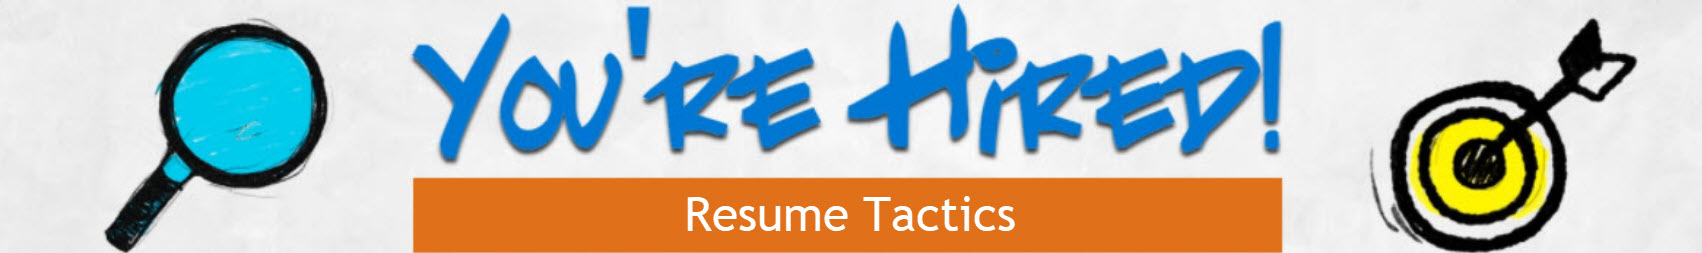 Resume Tactics E-book